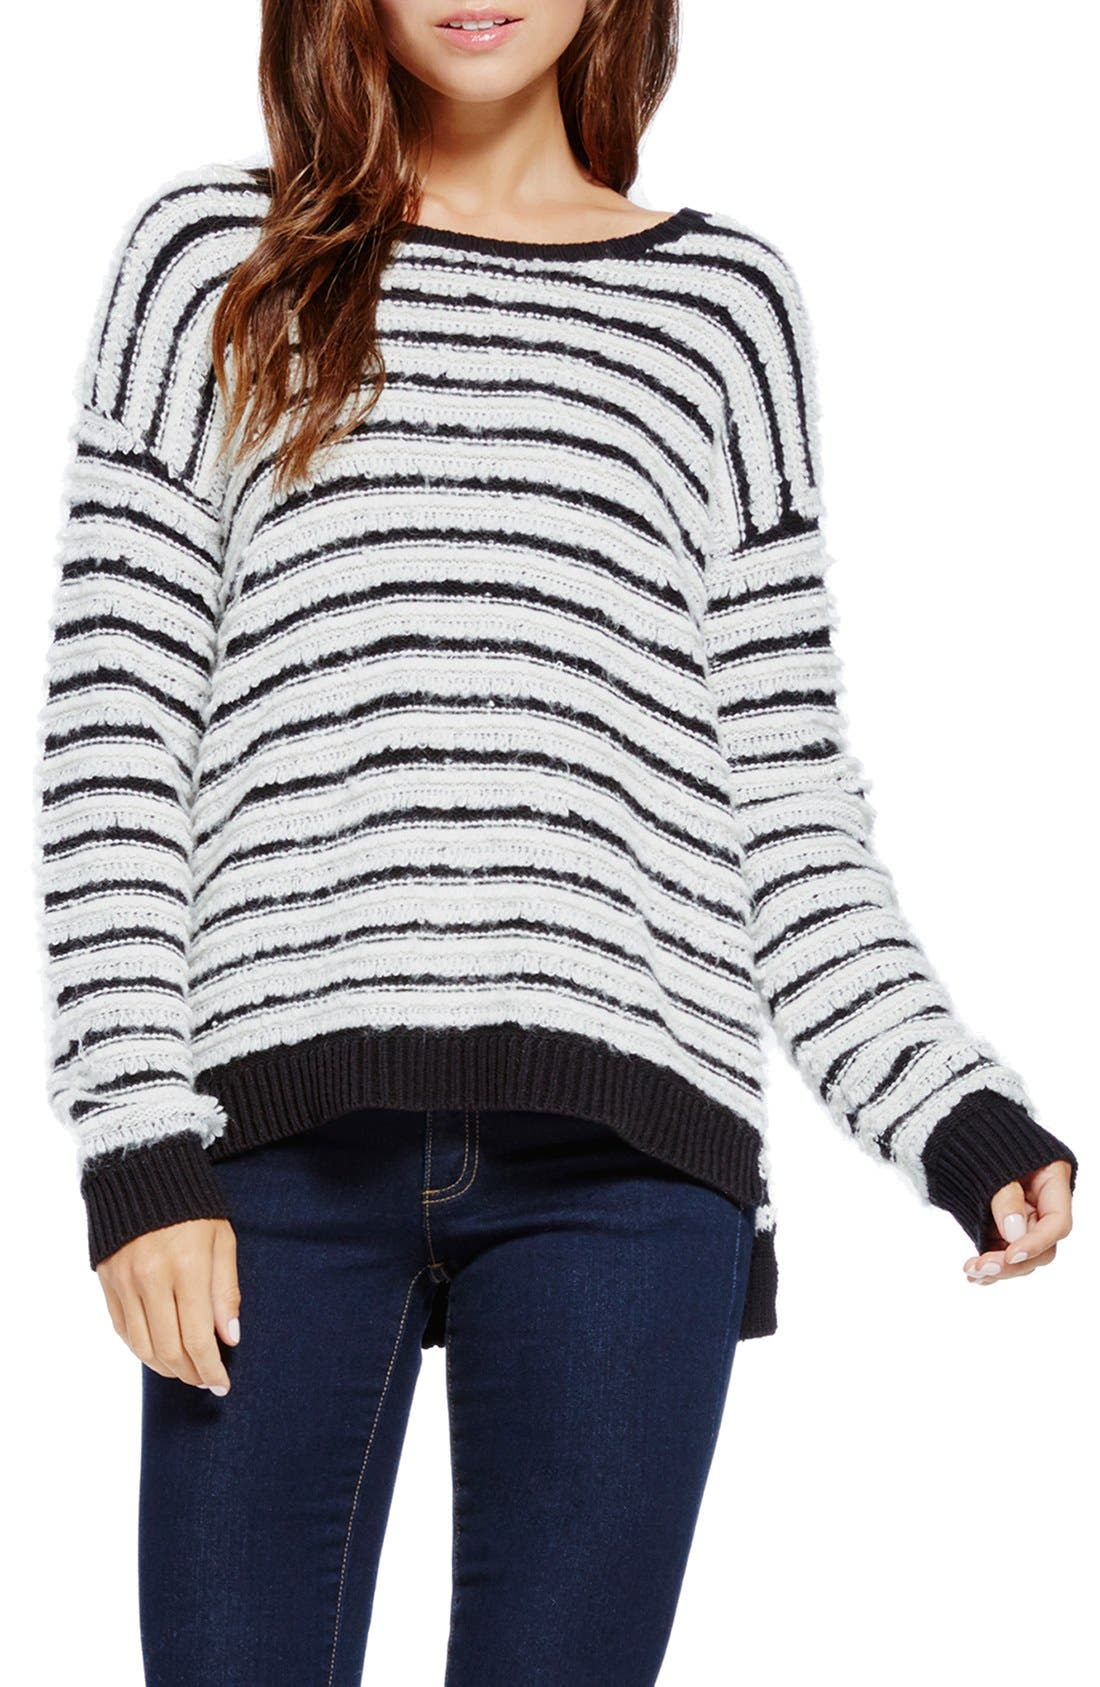 Main Image - Two by Vince Camuto Stripe Loopy Stitch Sweater